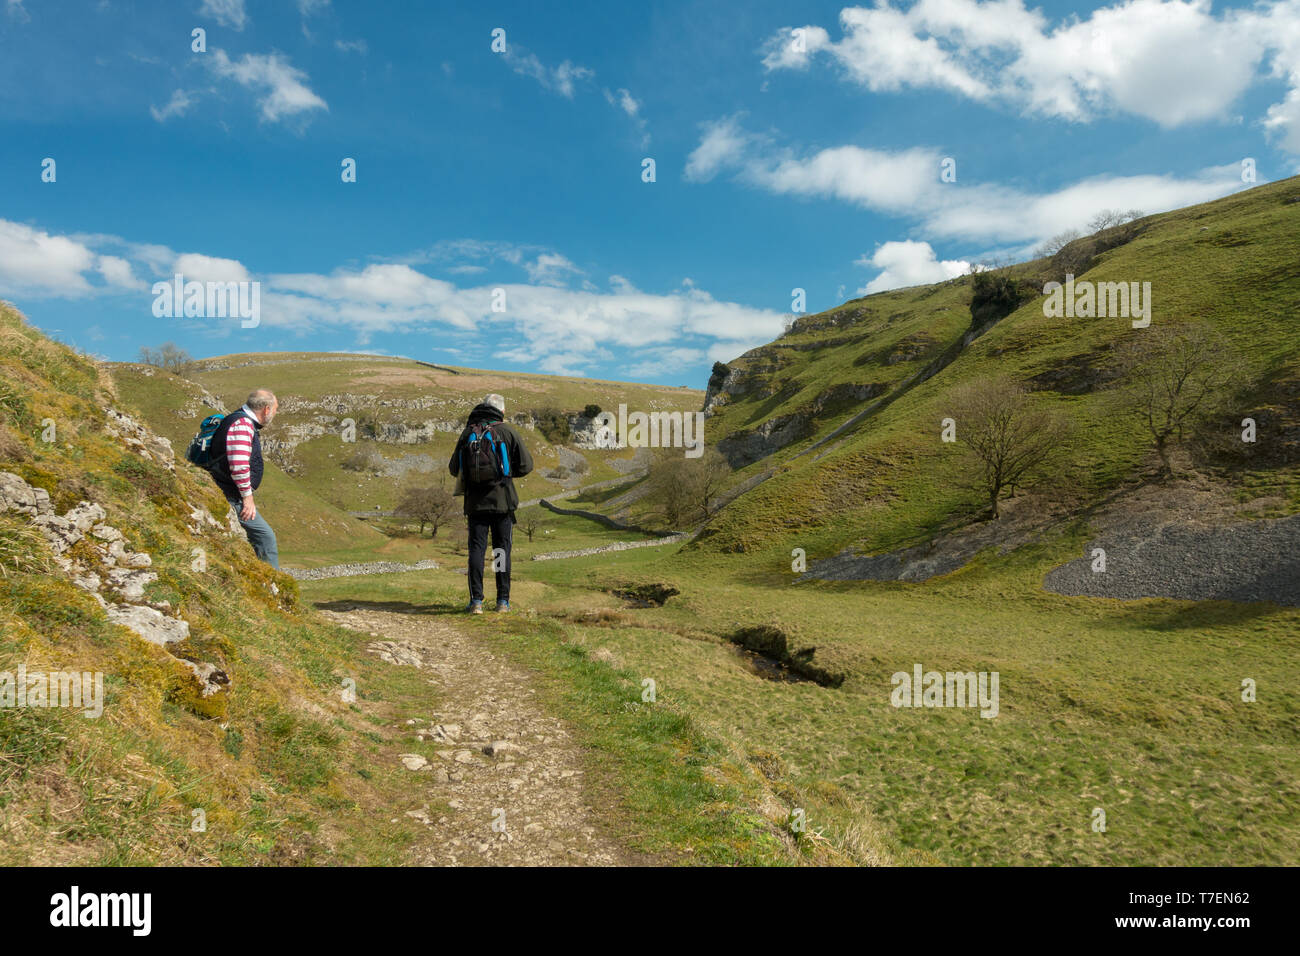 Men socialising: Seniors enjoying views over Trollerdale from the path to Troller's Gill near Appletreewick, Yorkshire Dales - Stock Image